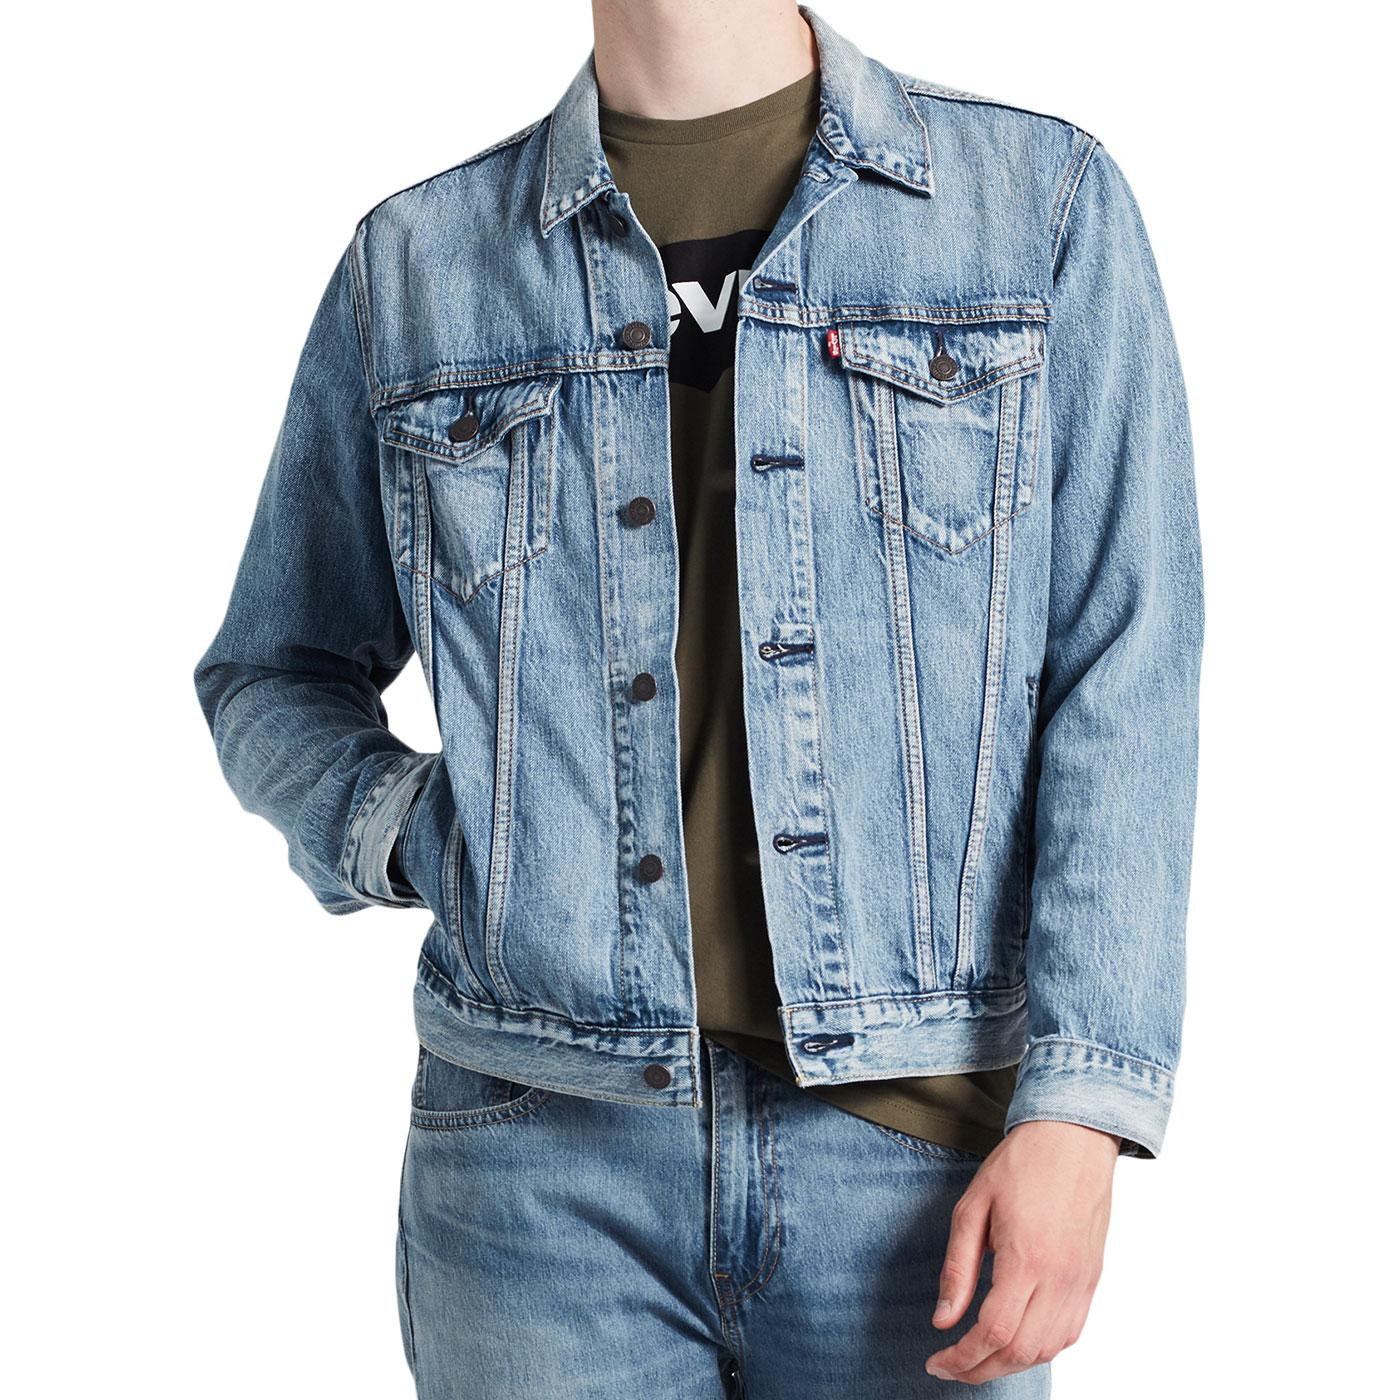 The Trucker LEVI'S Retro Denim Jacket (Killebrew)